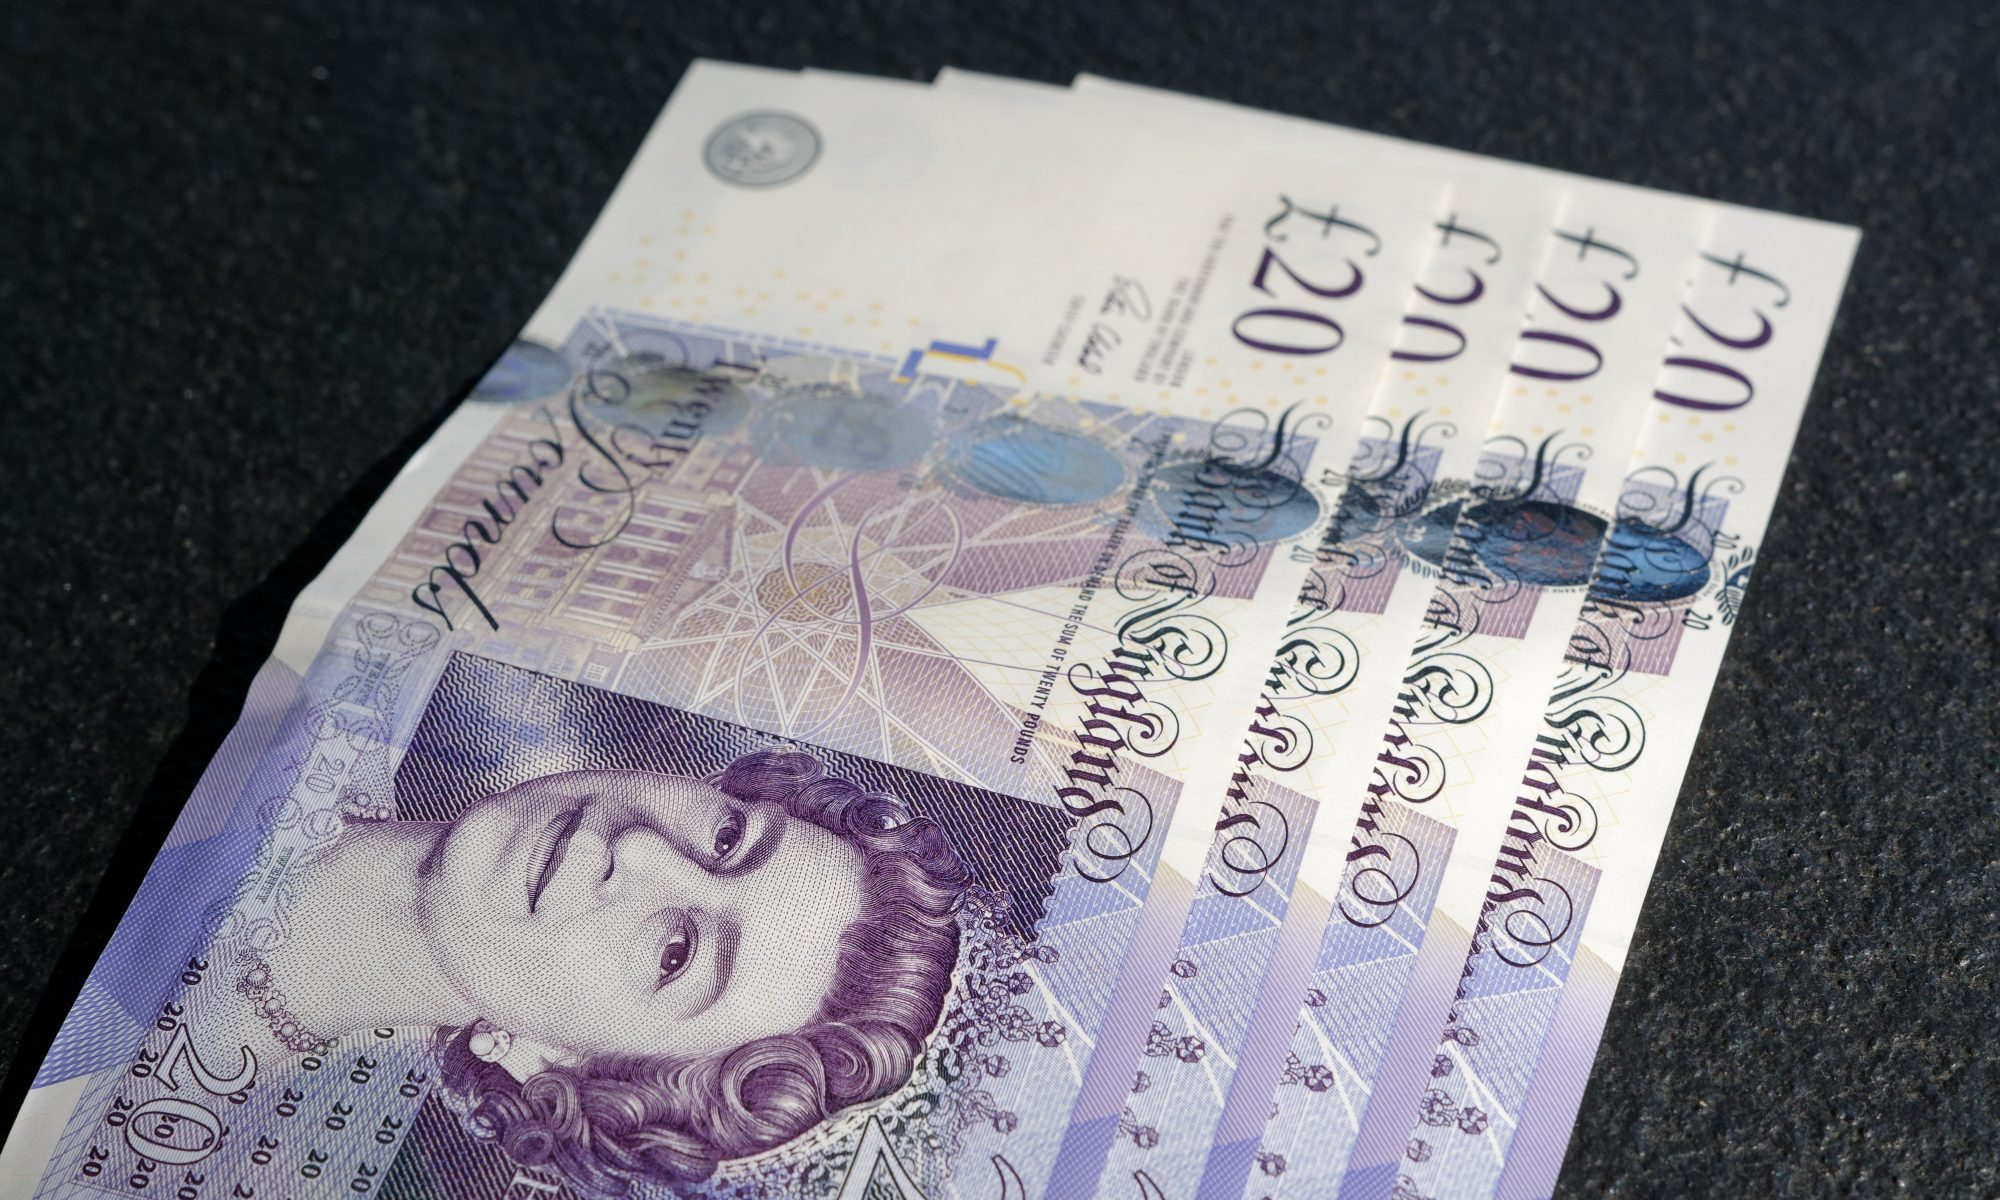 Four UK 20 Pound notes with the Queen's Head